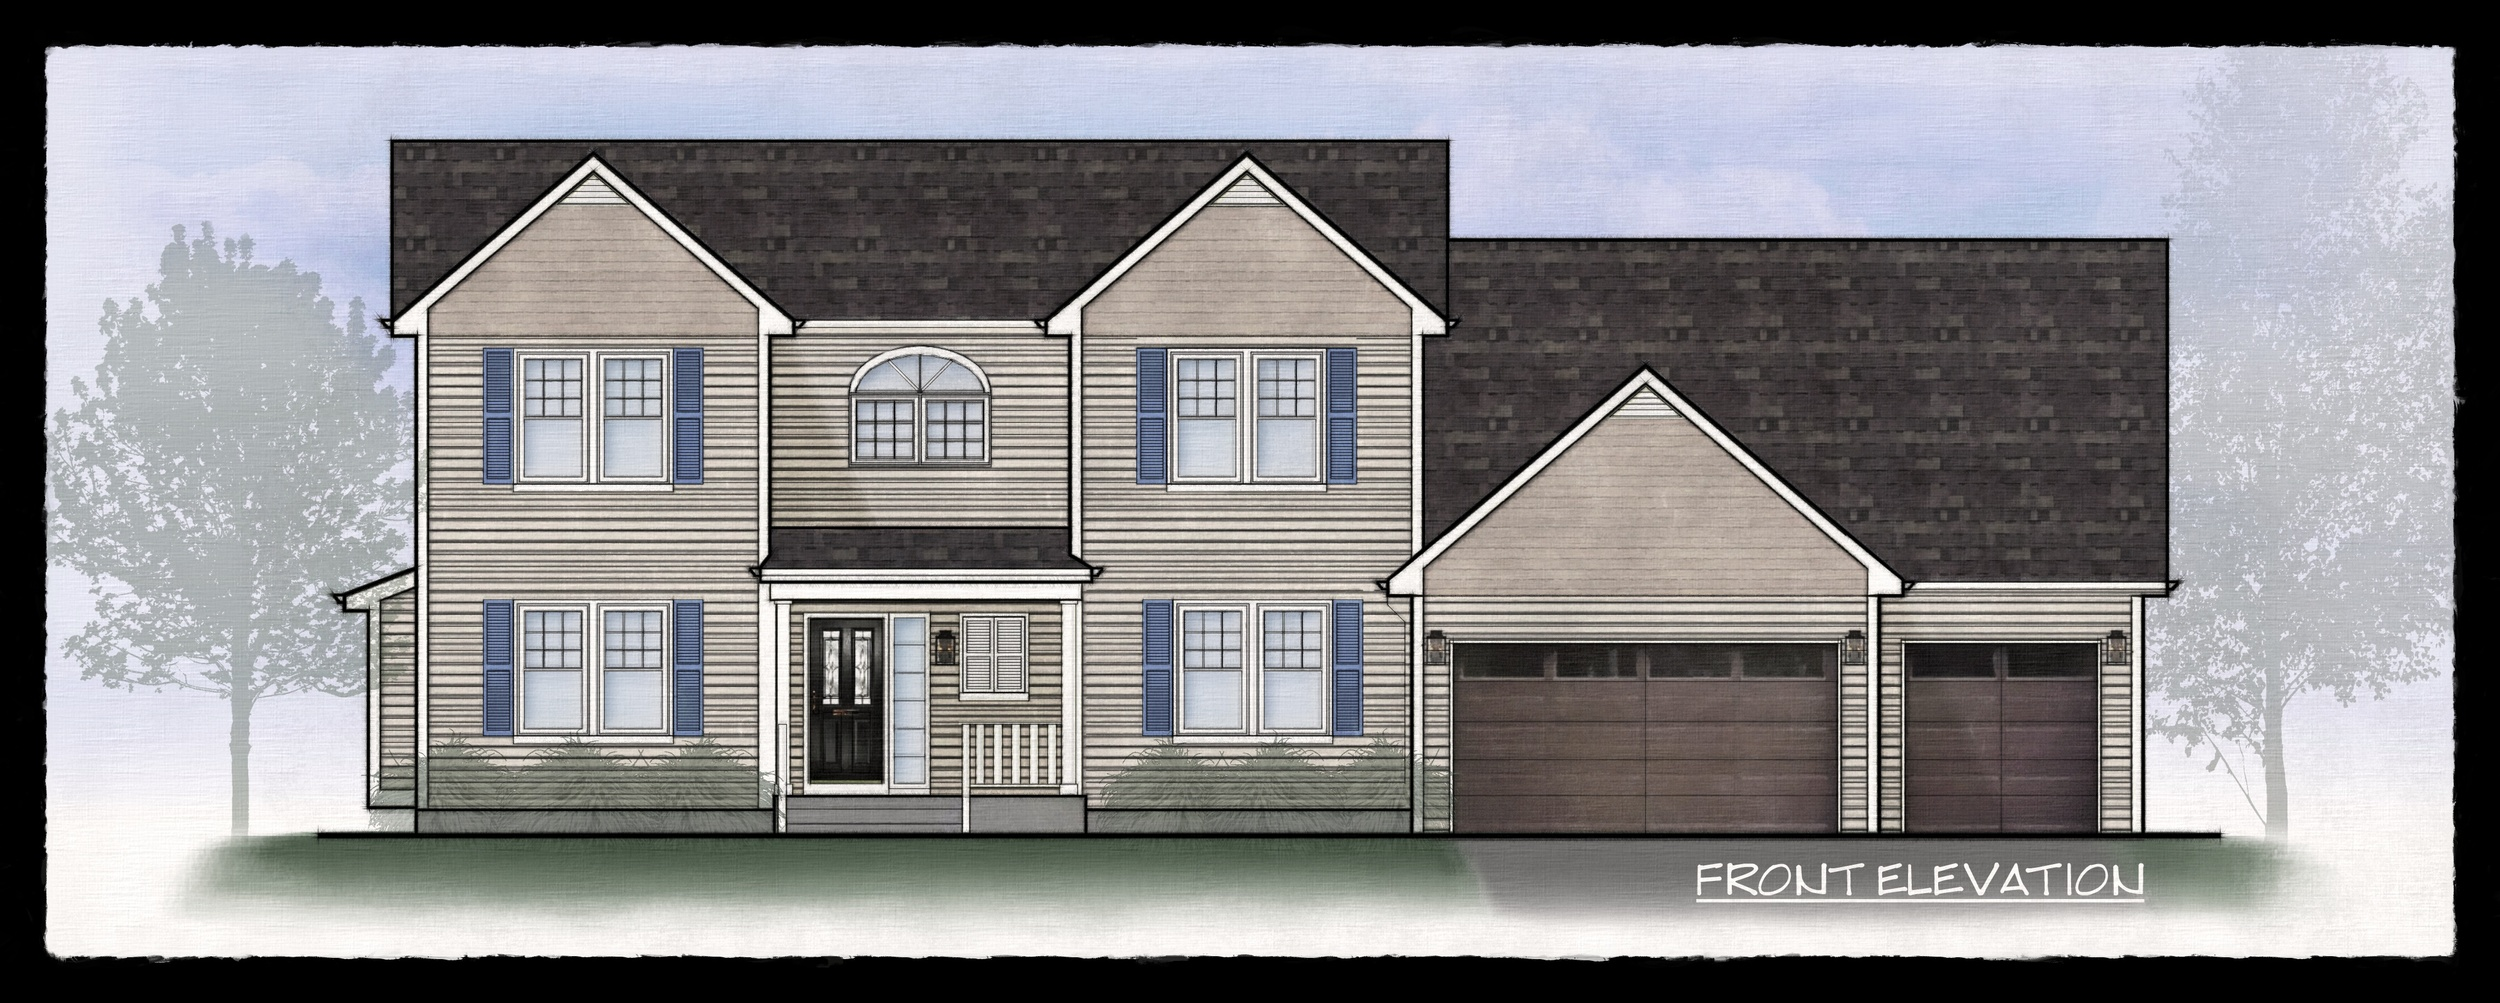 Architecture Elevation Rendering